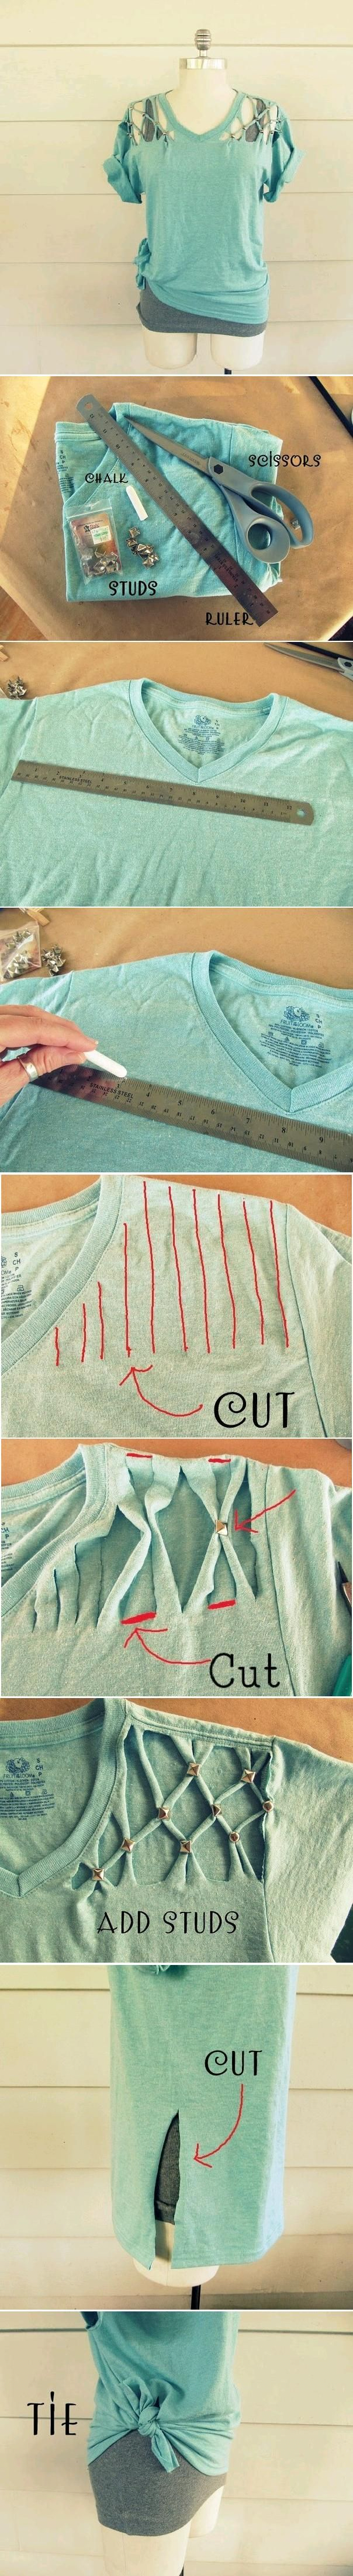 DIY Cool Studded T-Shirt, for recycling old T's